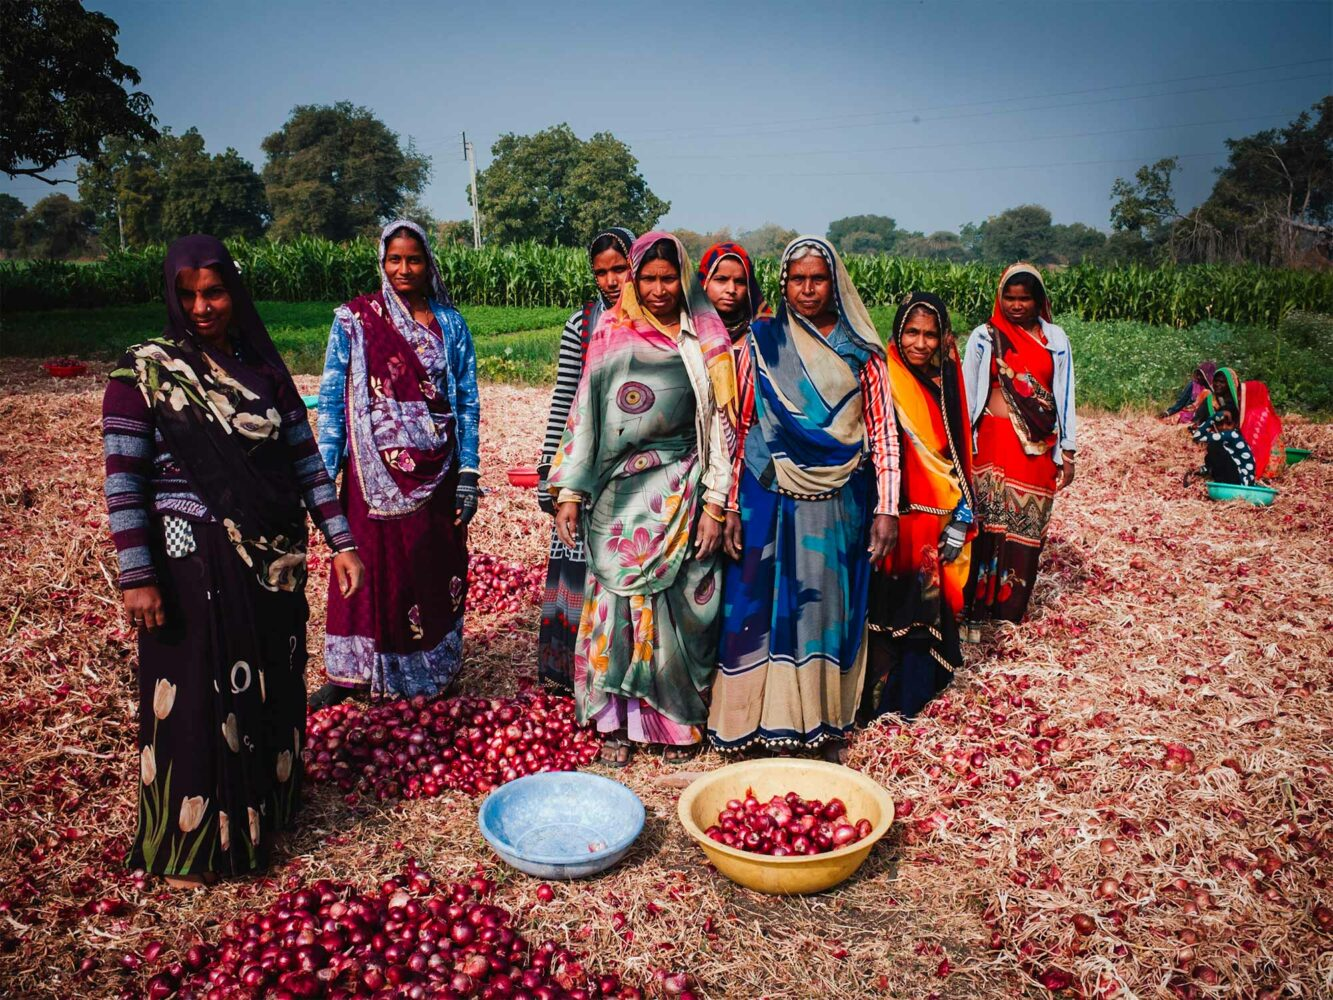 Women working a red onion field in the rural village of Budha, India.